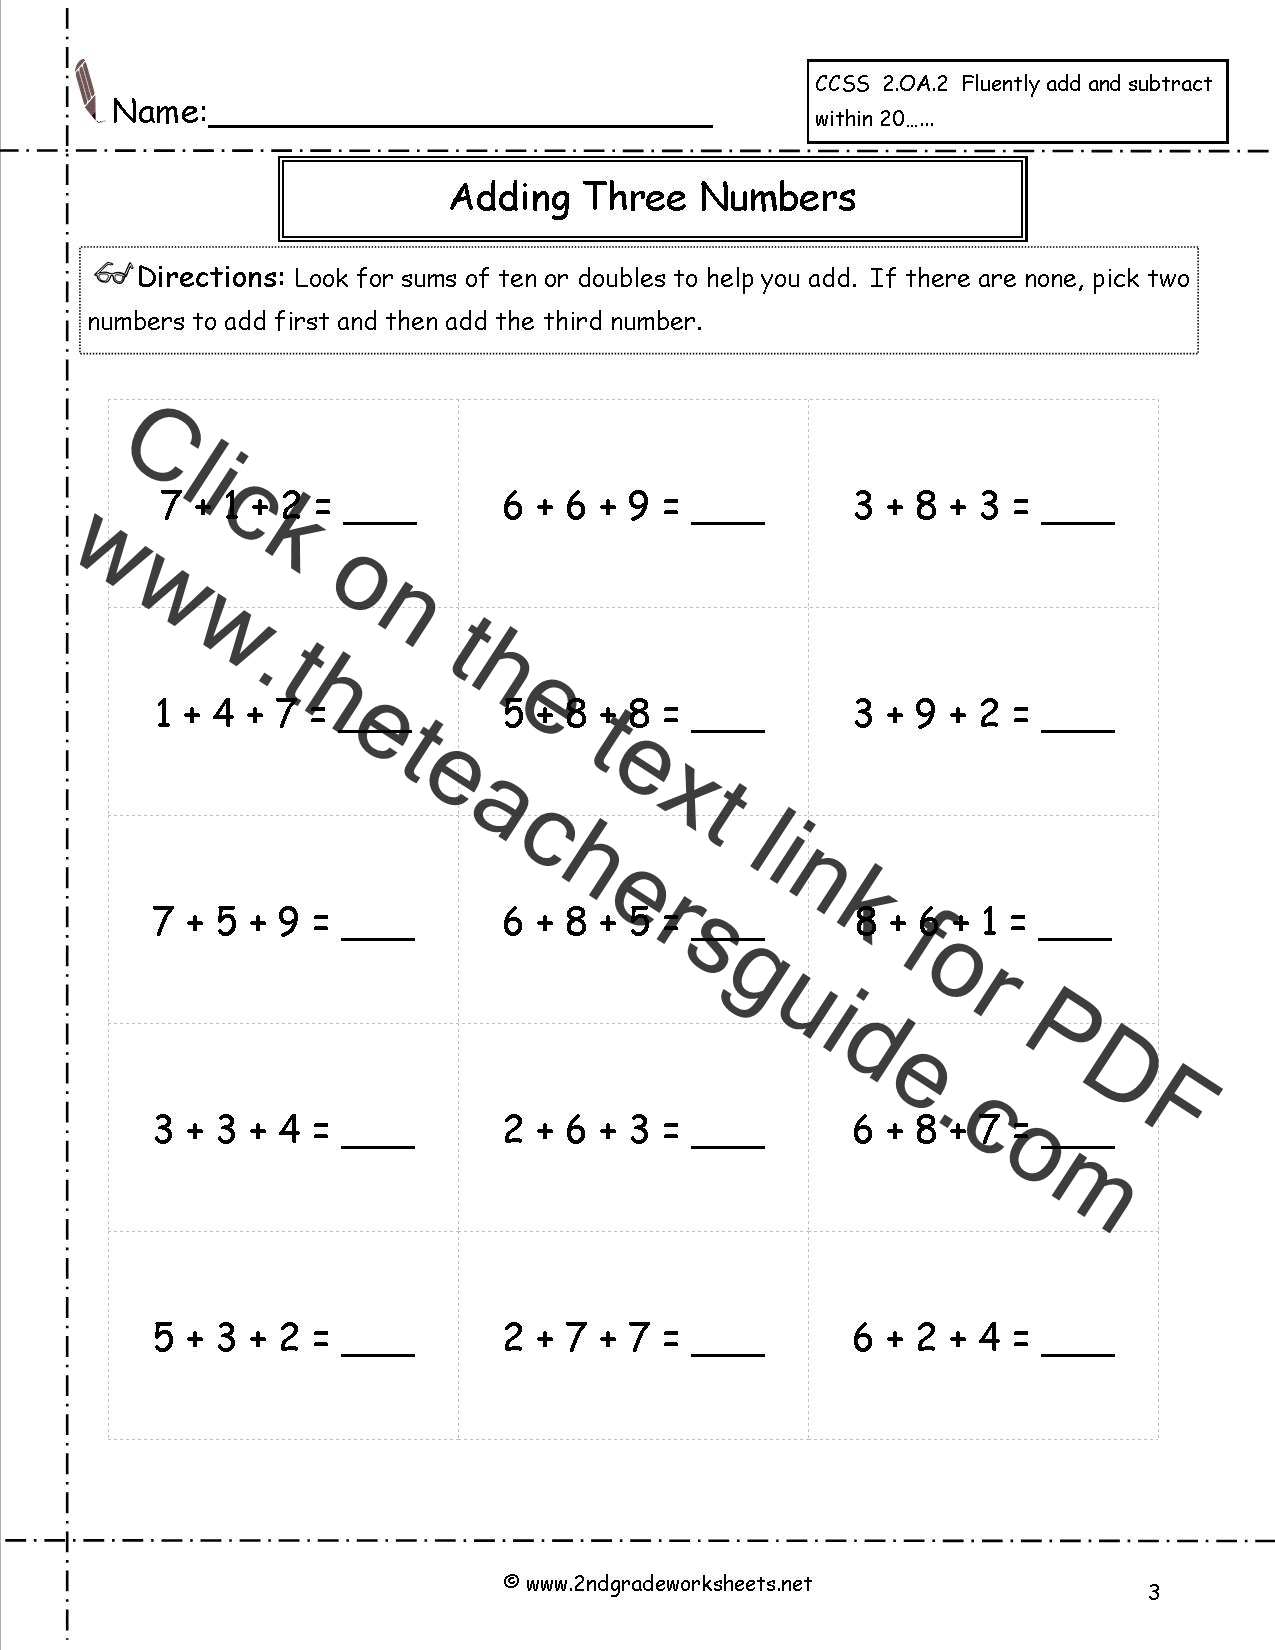 worksheet Adding Three Numbers Worksheet adding three or more single digit numbers worksheets worksheet